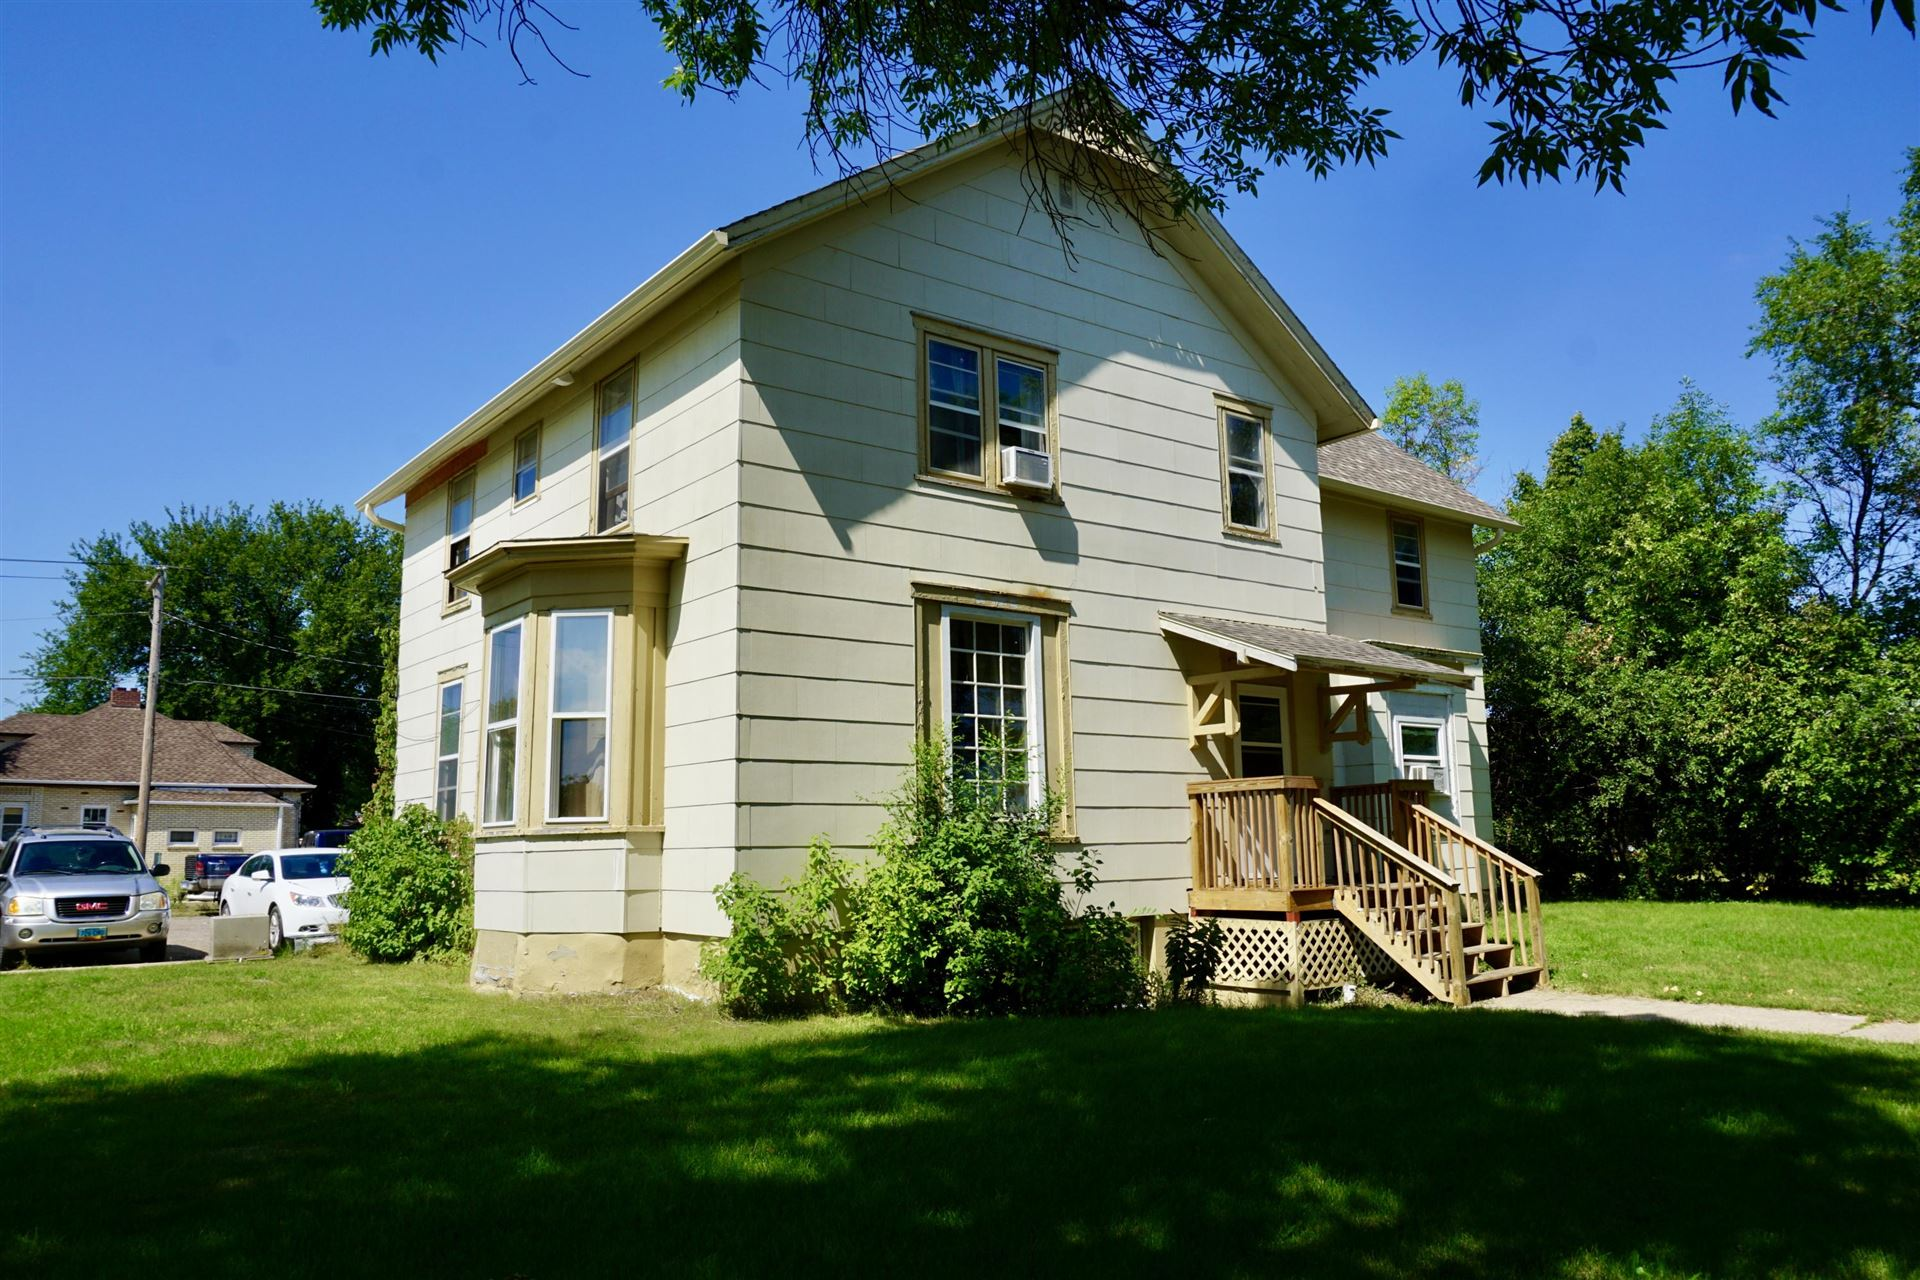 Photo for 809 Central Avenue N, Valley City, ND 58072 (MLS # 20-482)